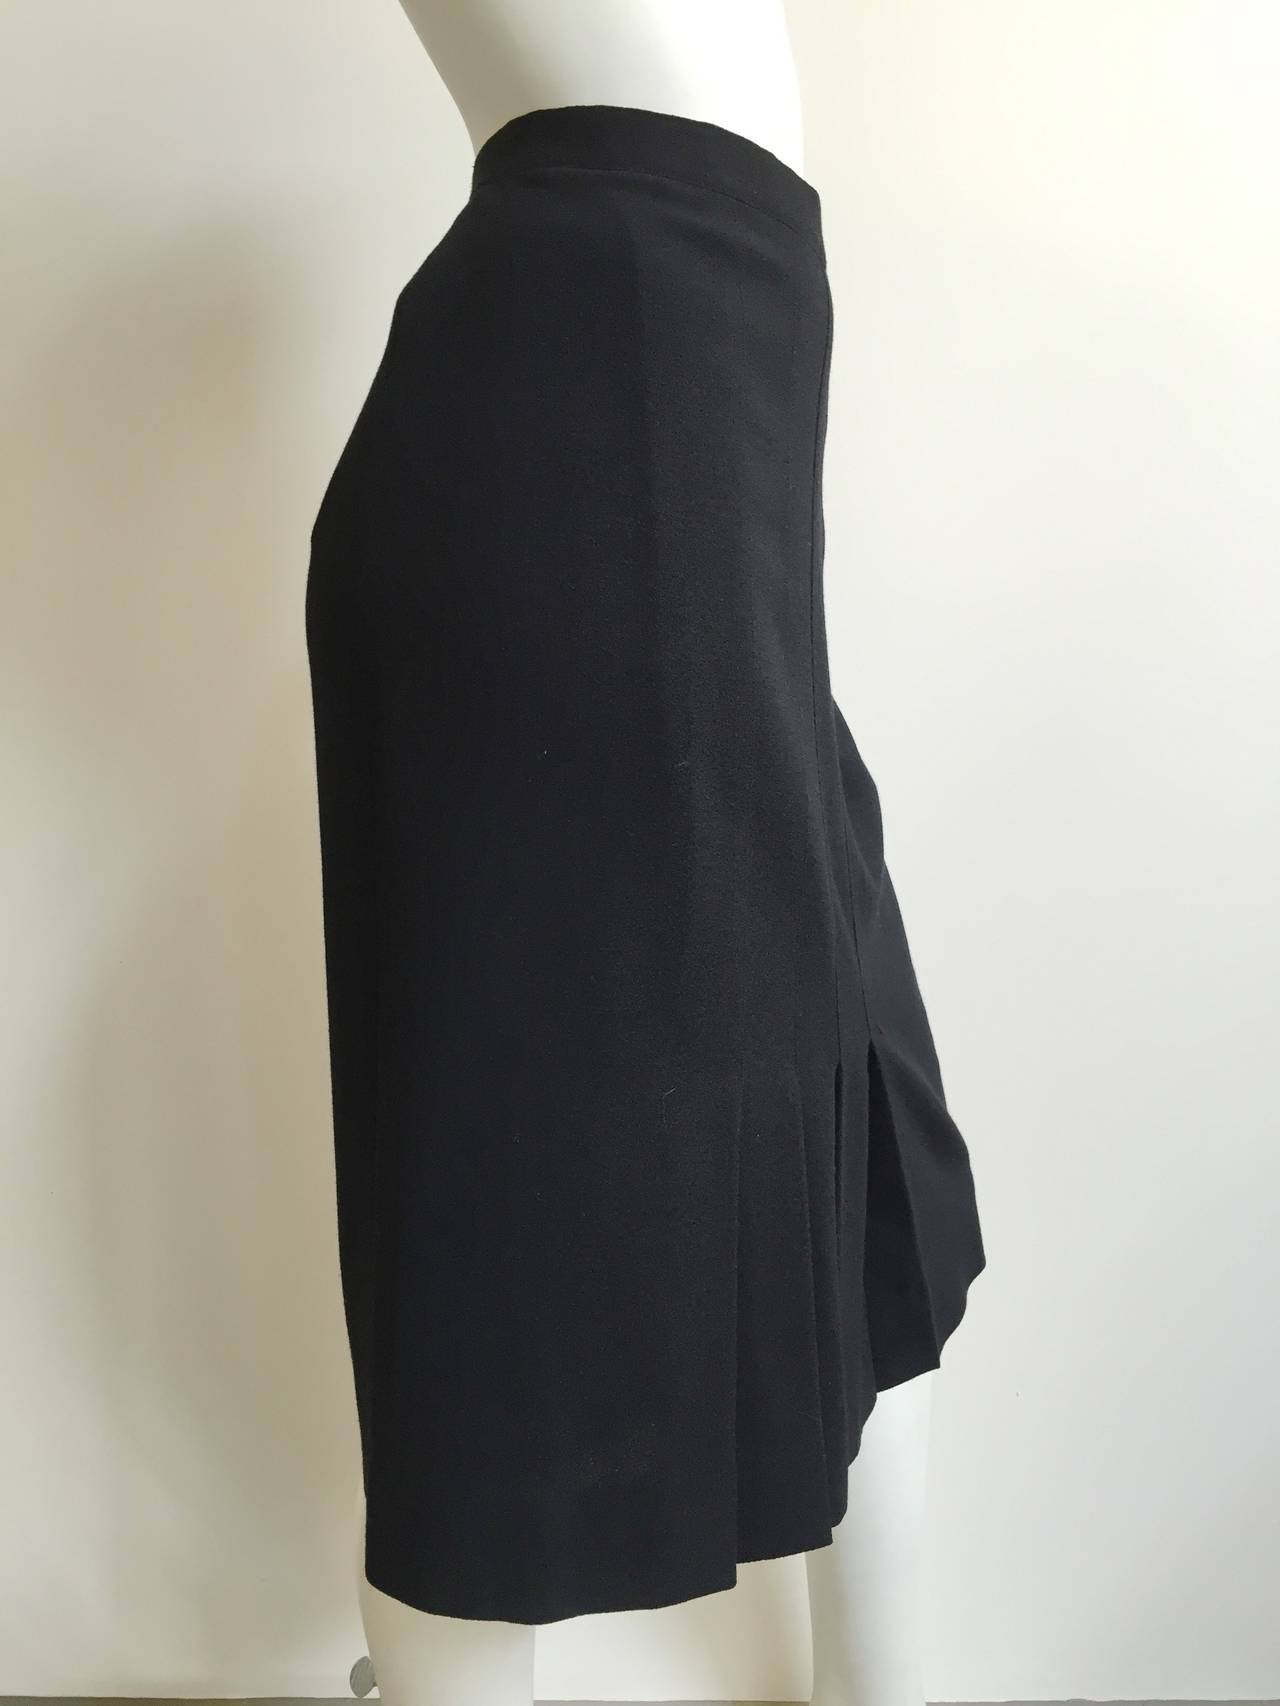 Chanel 80s Black Pleated Skirt Size 10. 3